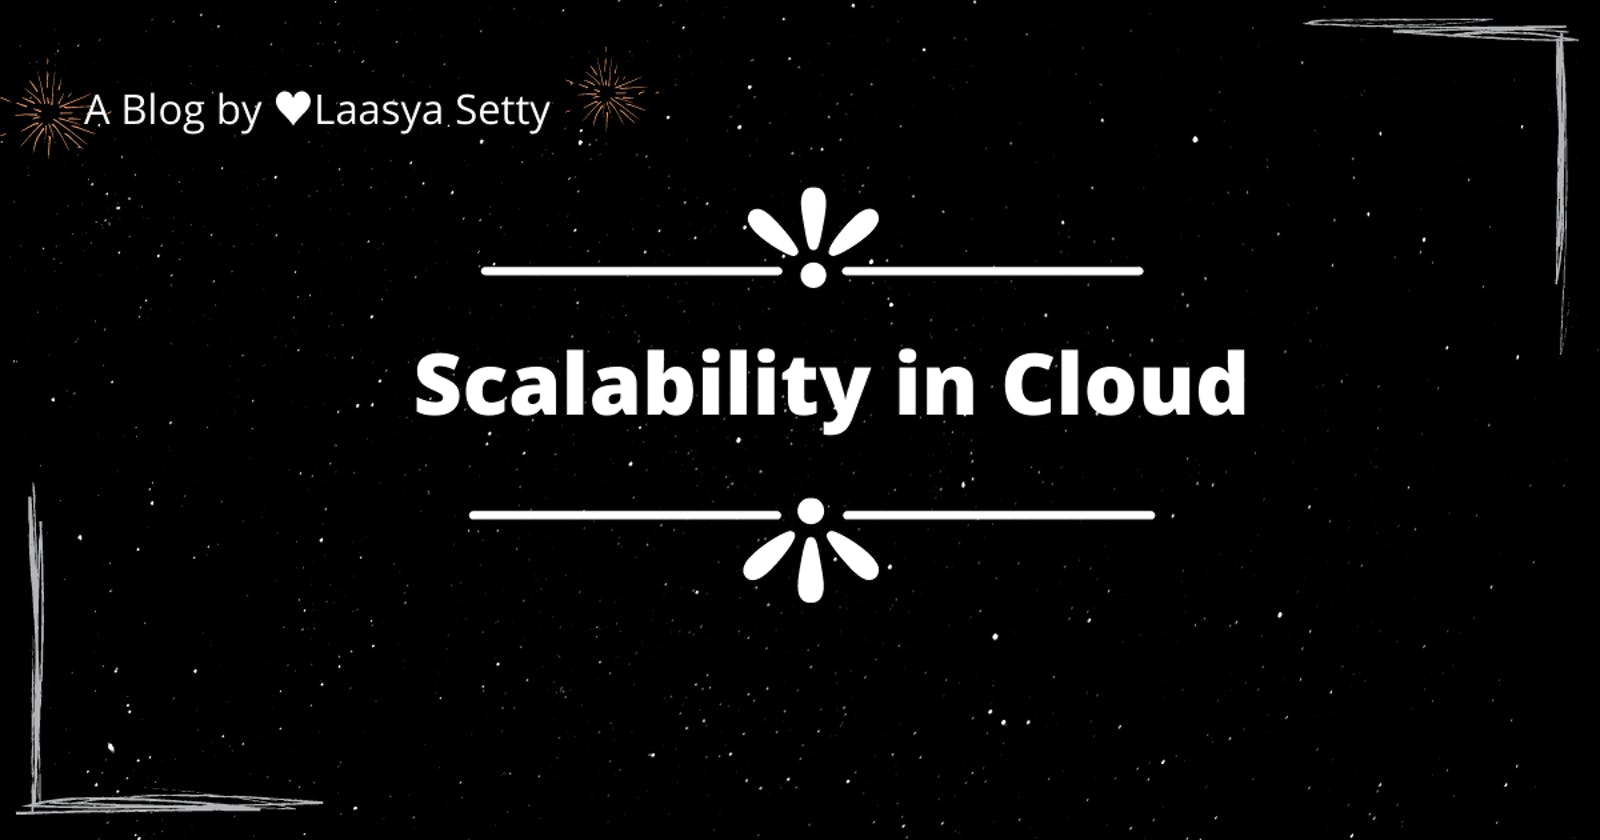 All About Scalability in Cloud